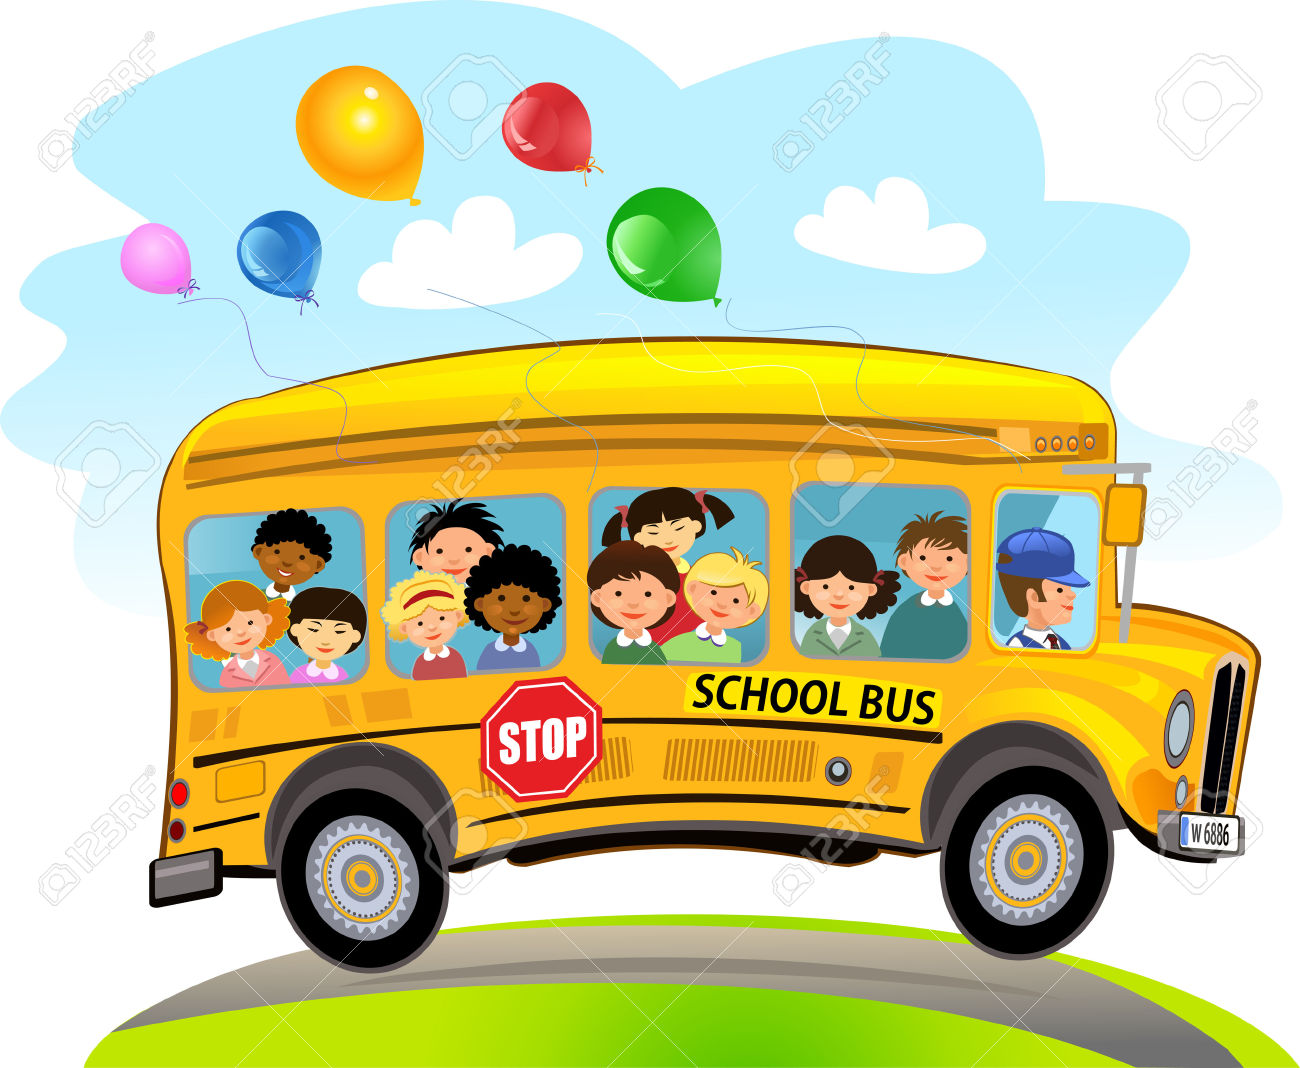 School bus and children clipart clipground for Clipart bus